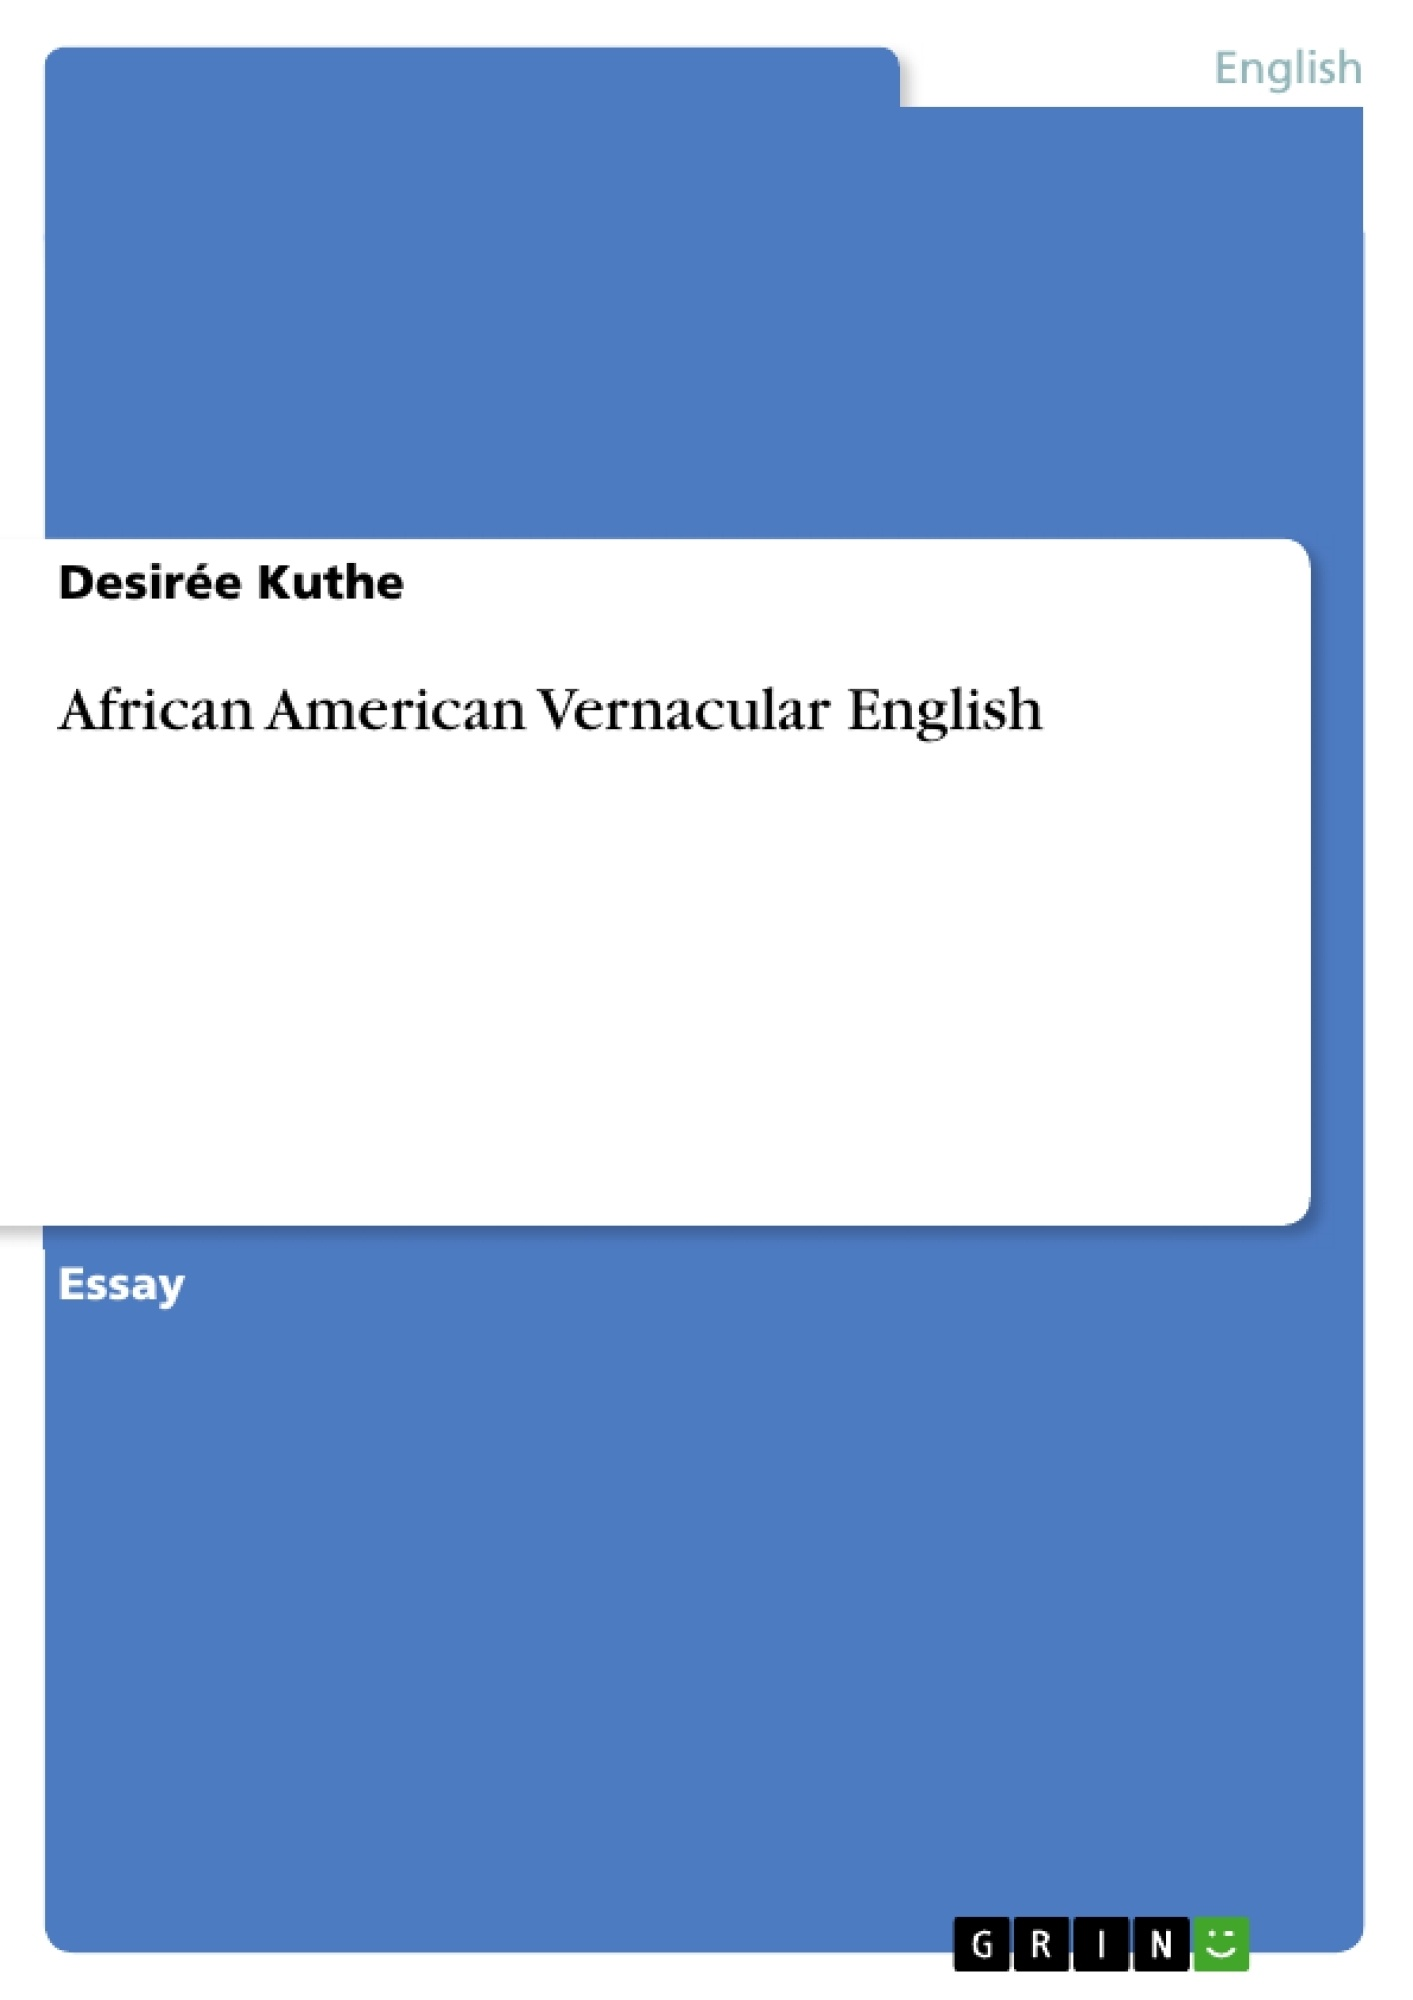 vernacular language essay Vernacular language abstract vernacular language is defined as the language of a particular group, profession, region or country especially spoken rather than written vernacular language is also considered a romance language (matthews, 2011).